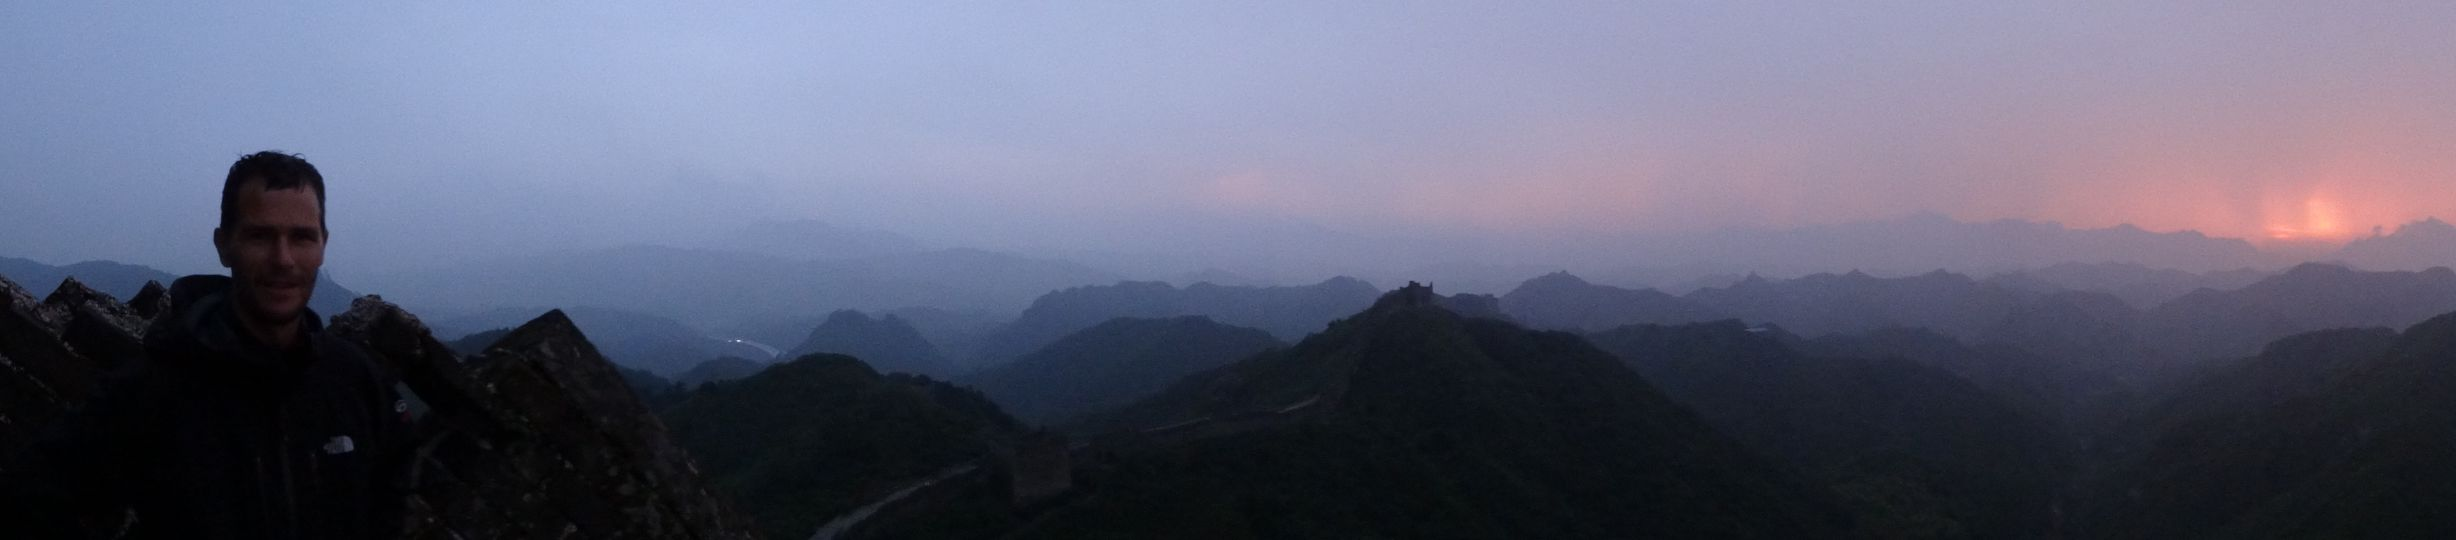 Great Wall at Jinshanling